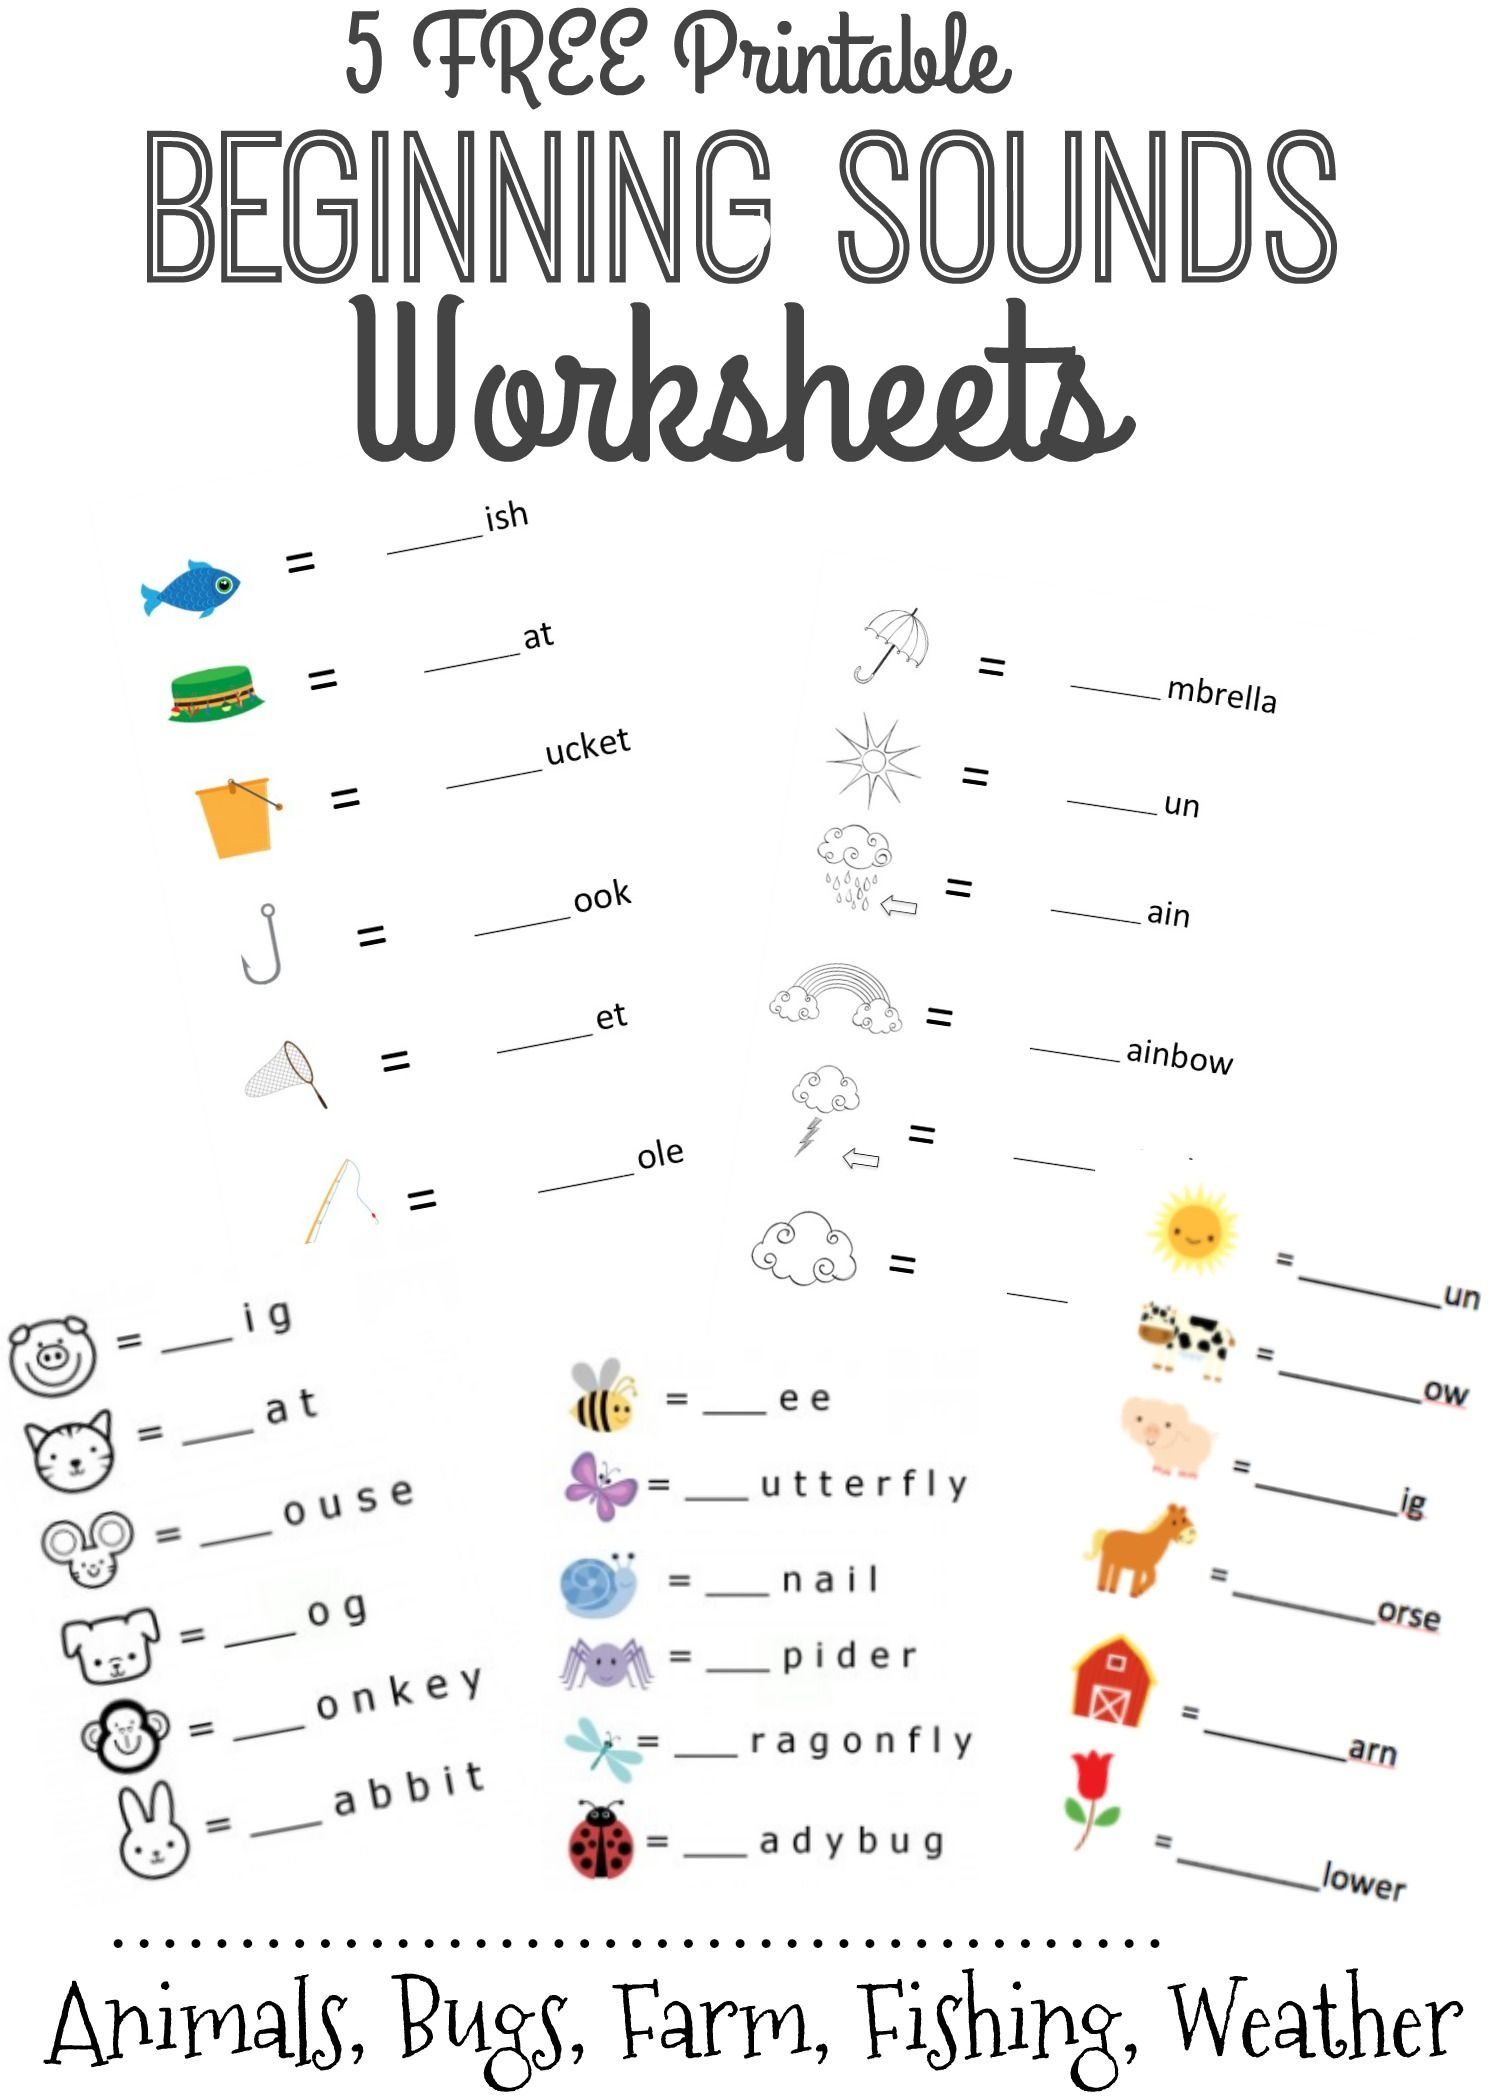 Beginning Sounds Letter Worksheets For Early Learners | Our Top - Free Printable Language Arts Worksheets For Kindergarten